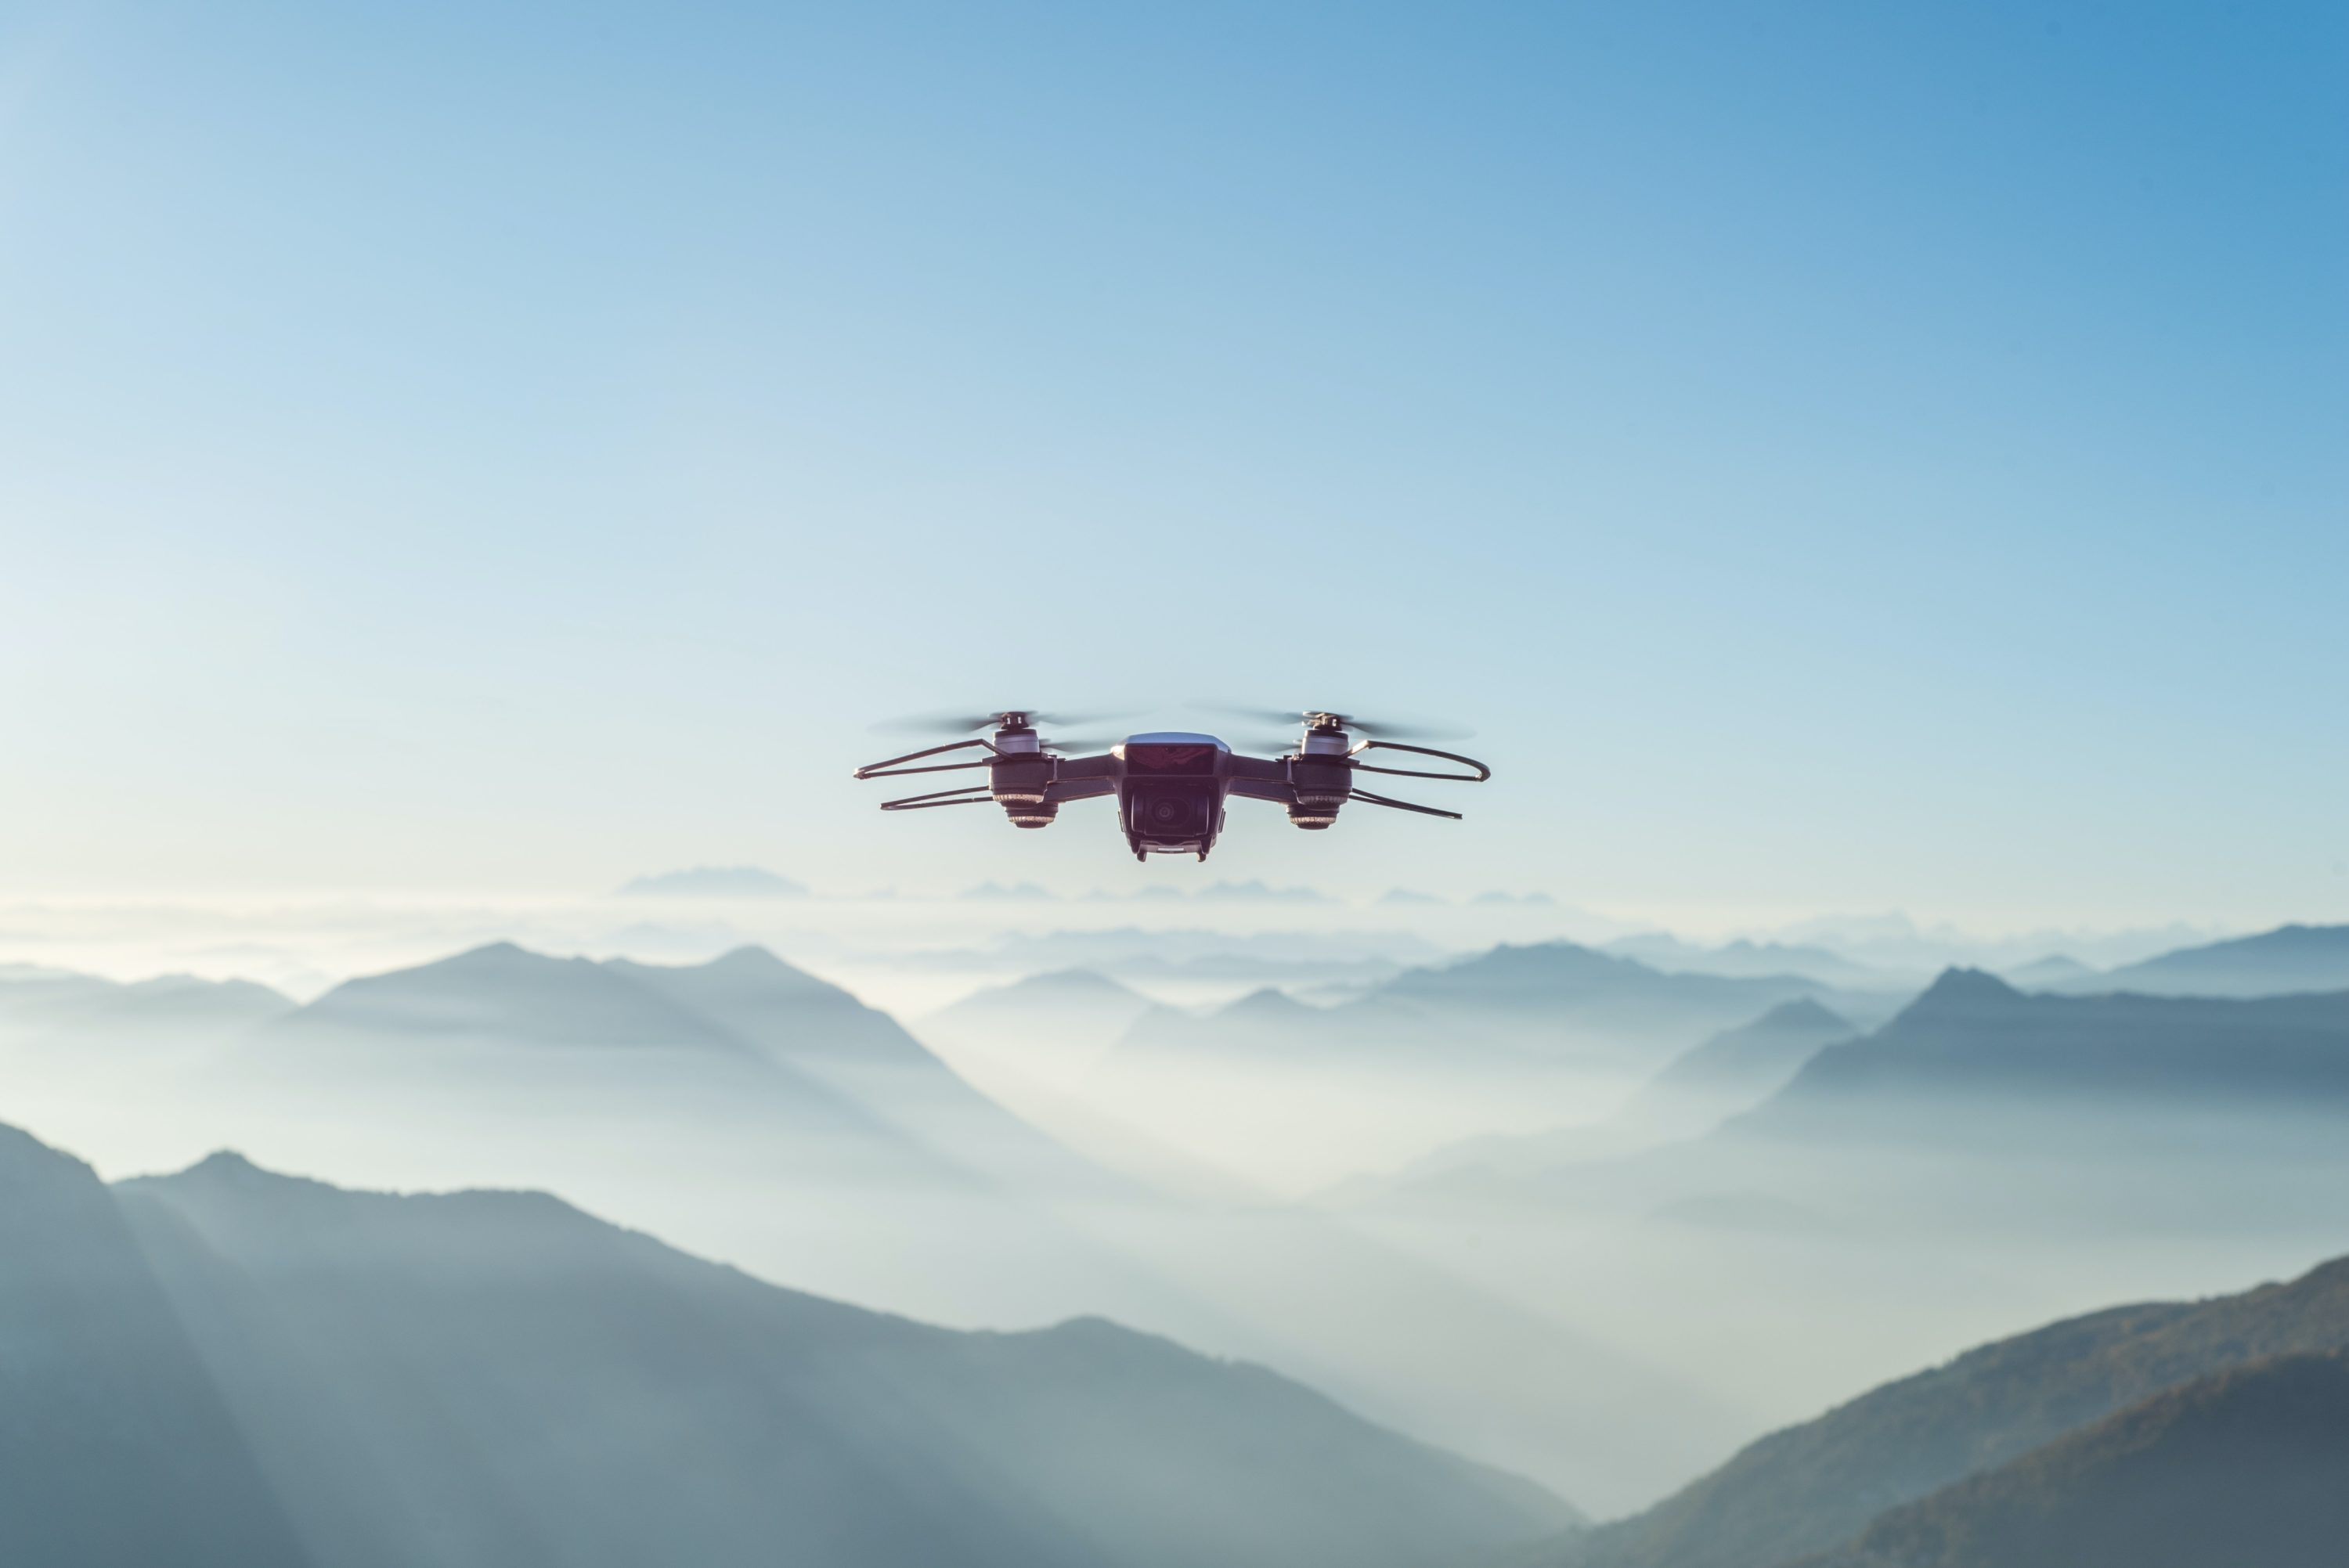 How to save money for your company with drones